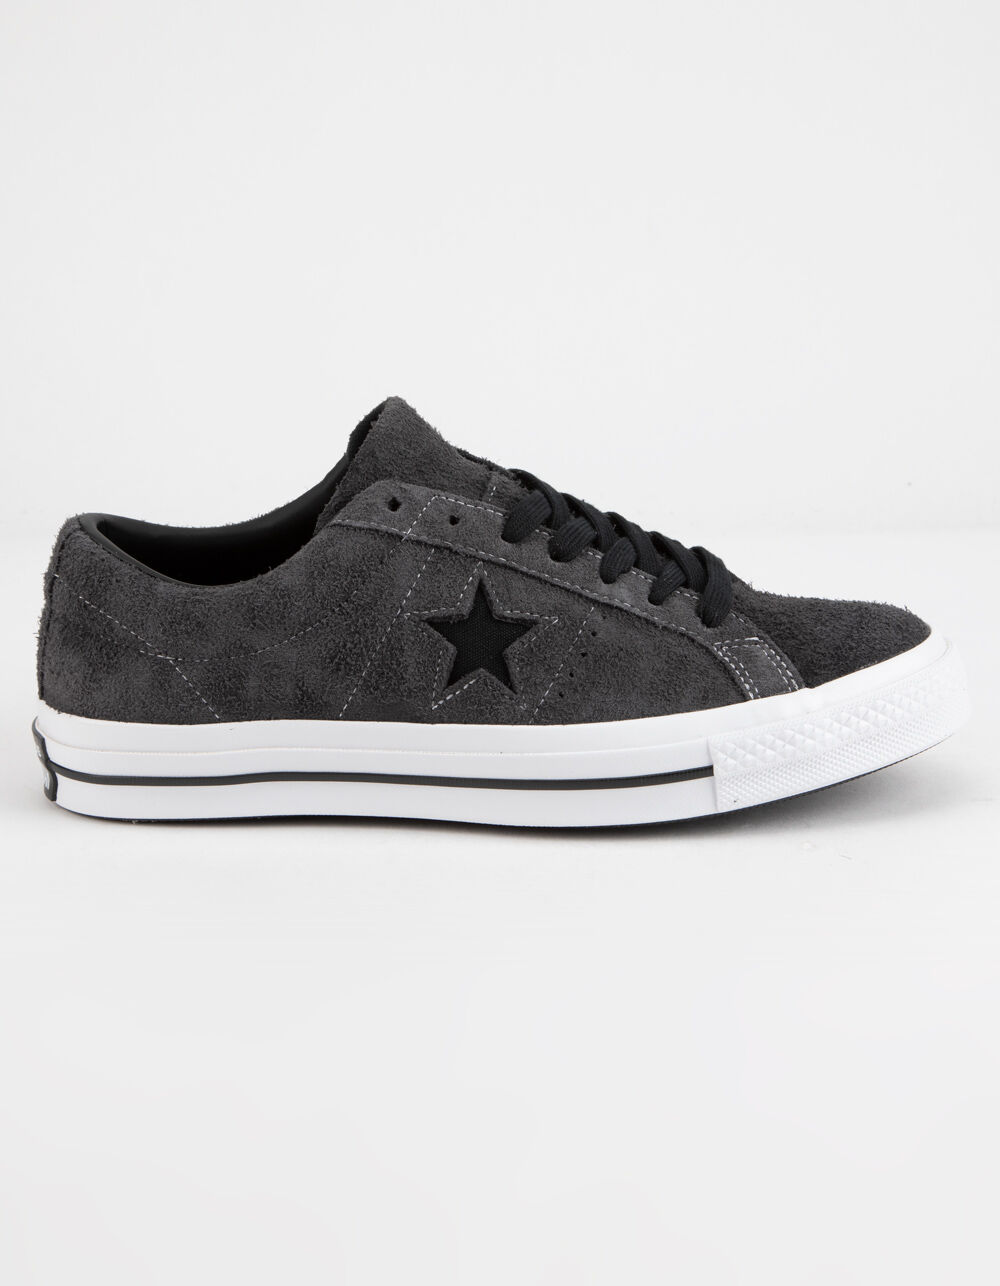 CONVERSE ONE STAR OX ALMOST BLACK SHOES